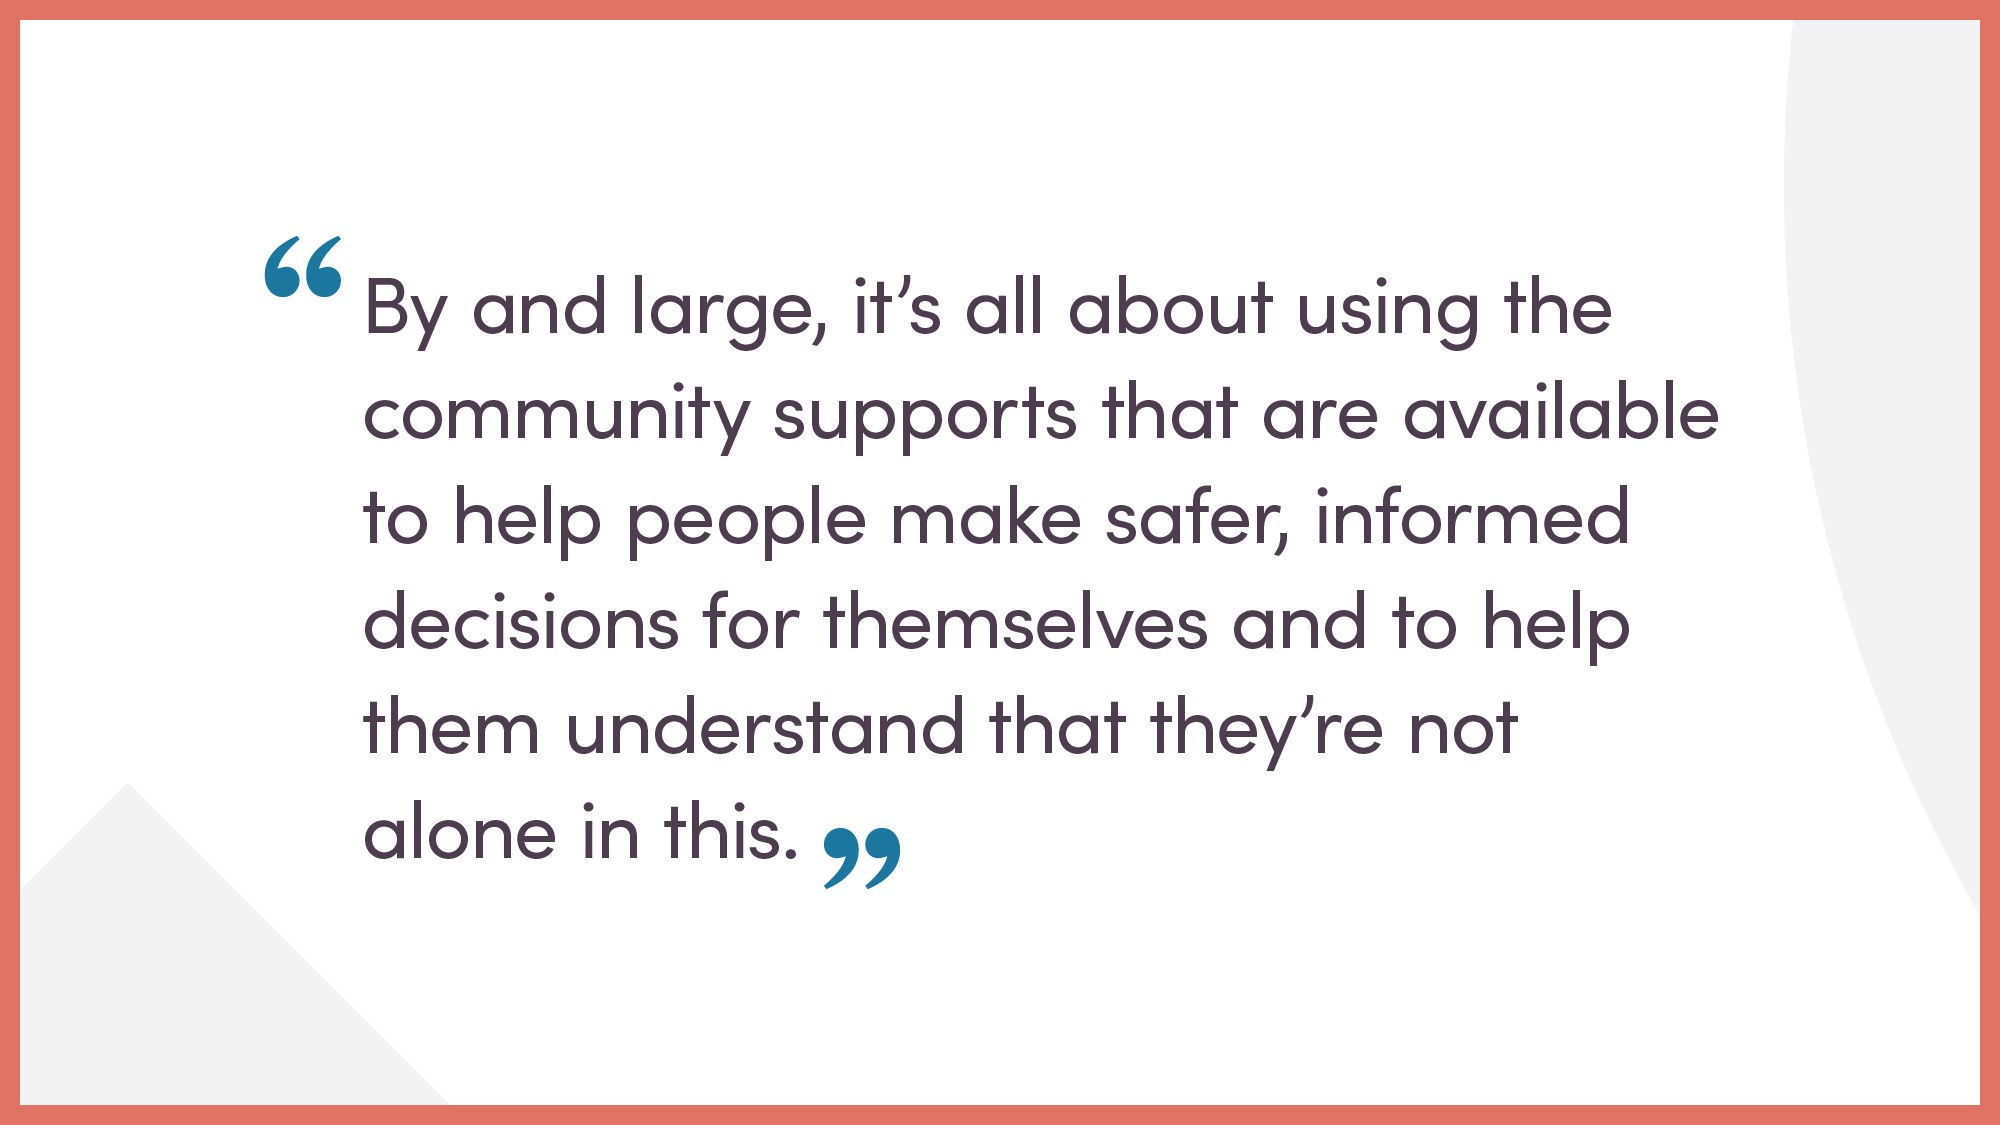 By and large, it's all about using the community supports that are available to help people make safer, informed decisions